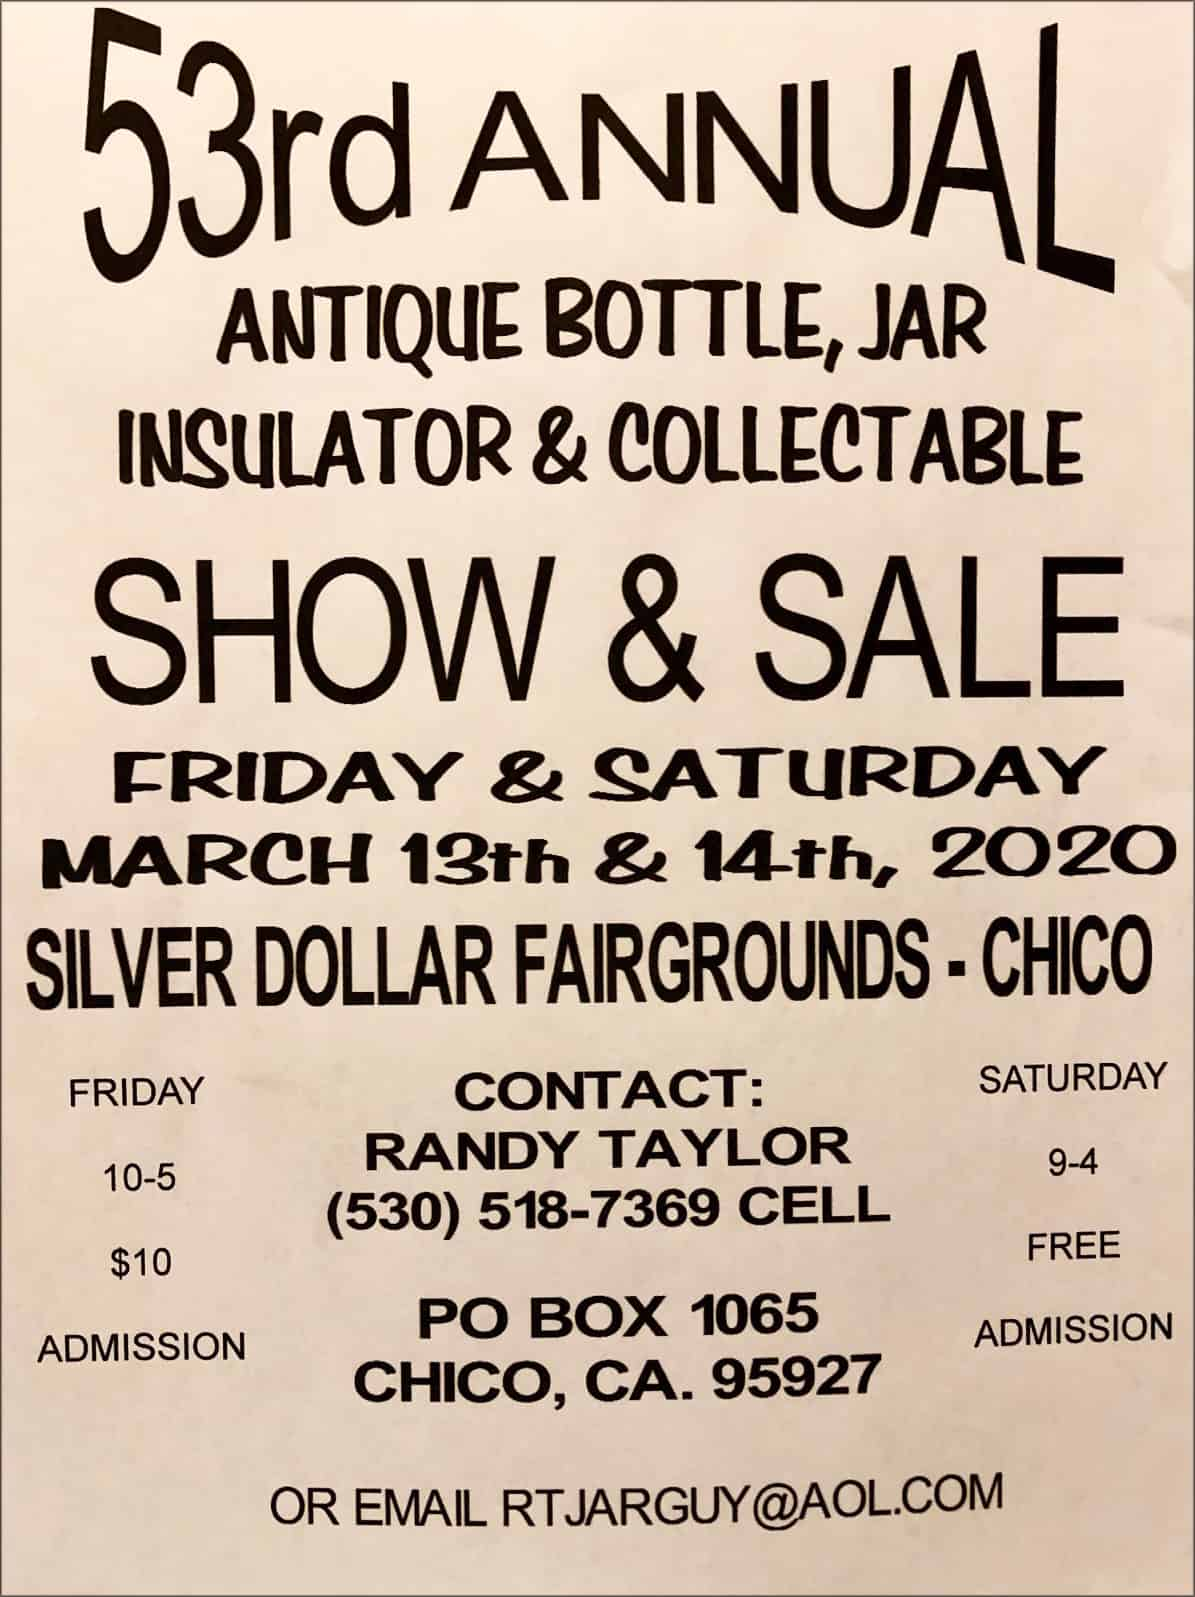 53rd Annual Antique Bottle, Jar, Insulator & Collectible Show & Sale @ Silver Dollar Fairgrounds